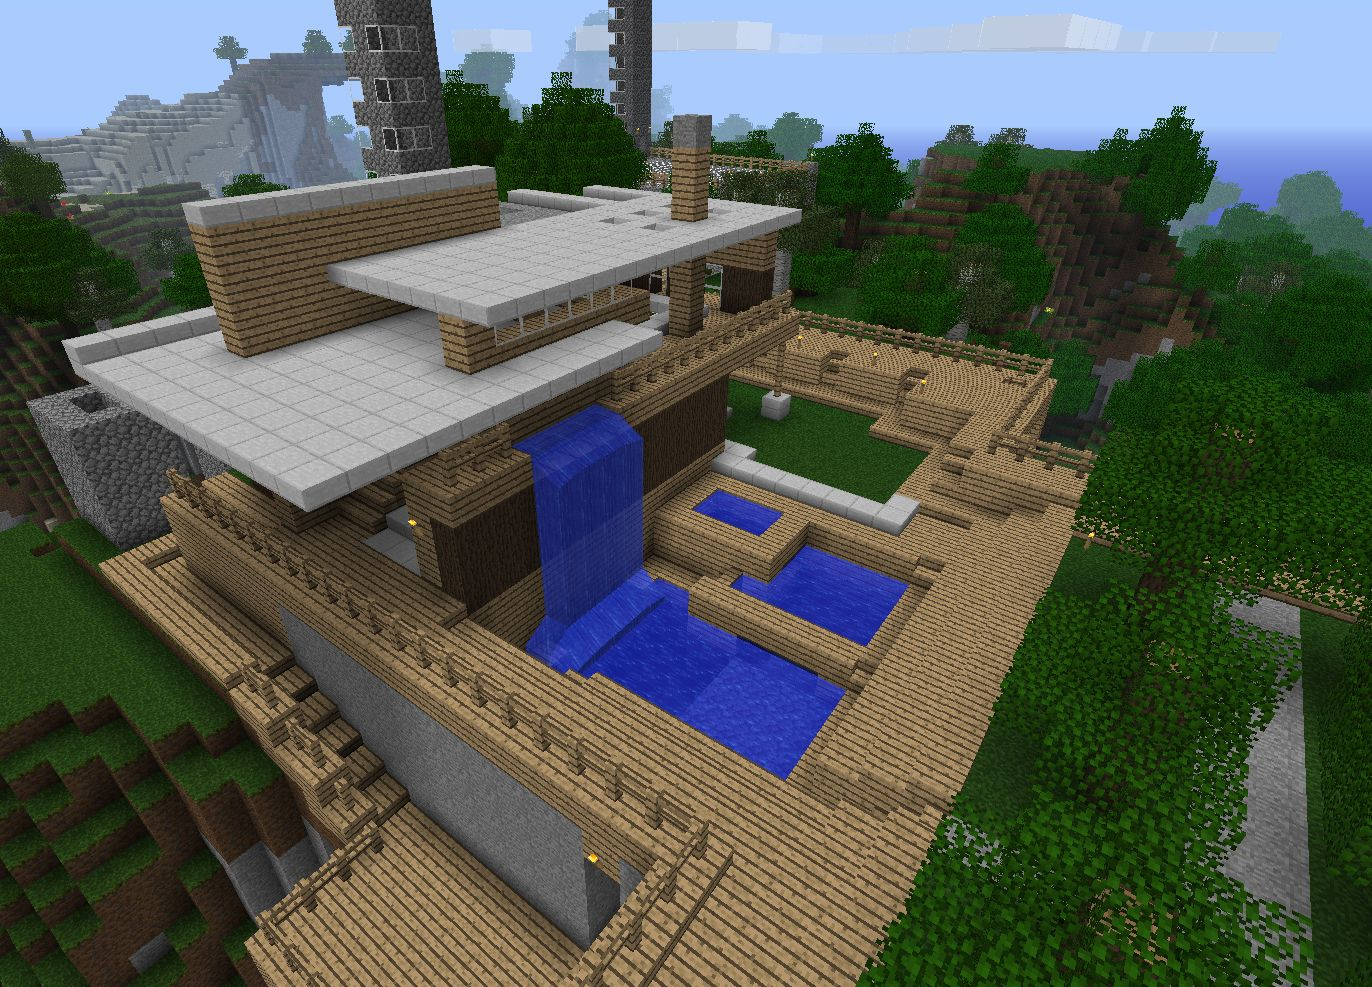 Awesome house | Cool minecraft houses, Minecraft houses ...